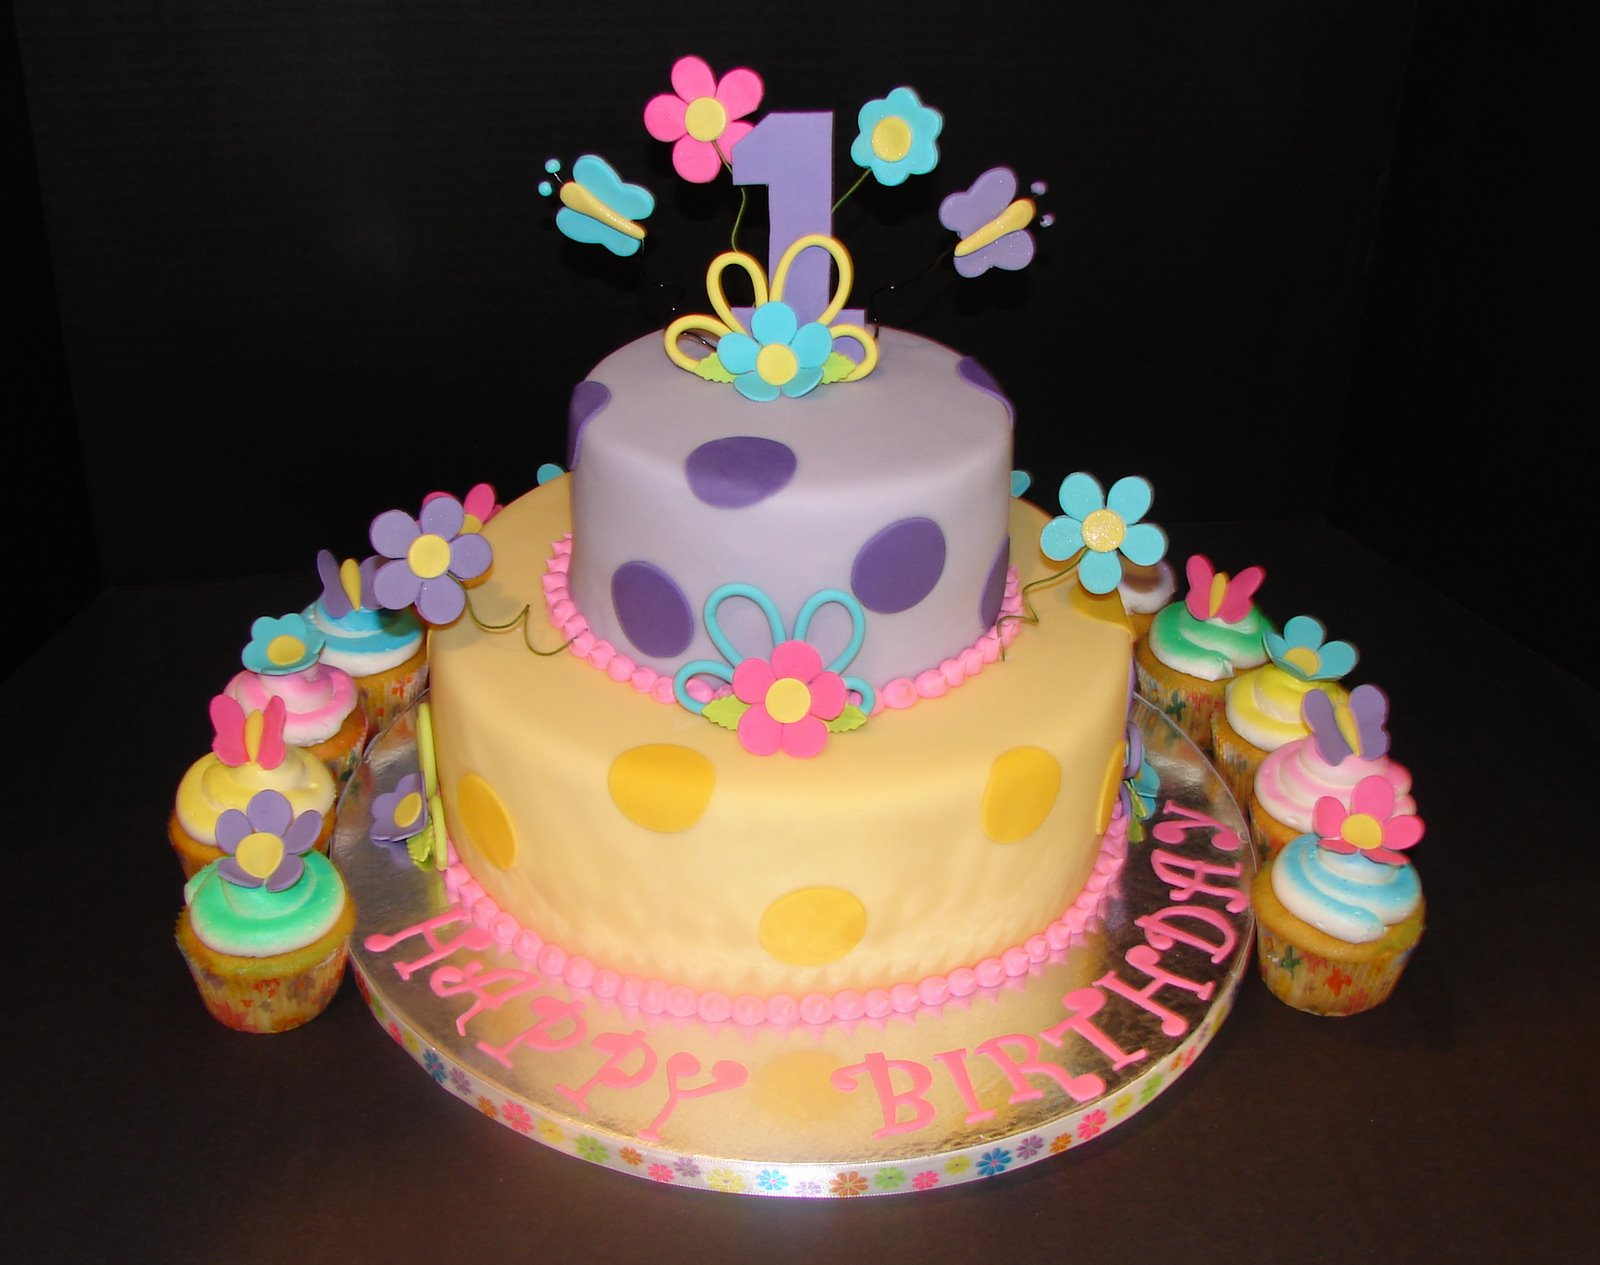 Cake Ideas Birthday Girl : teenage girl birthday cakes Cake Photos